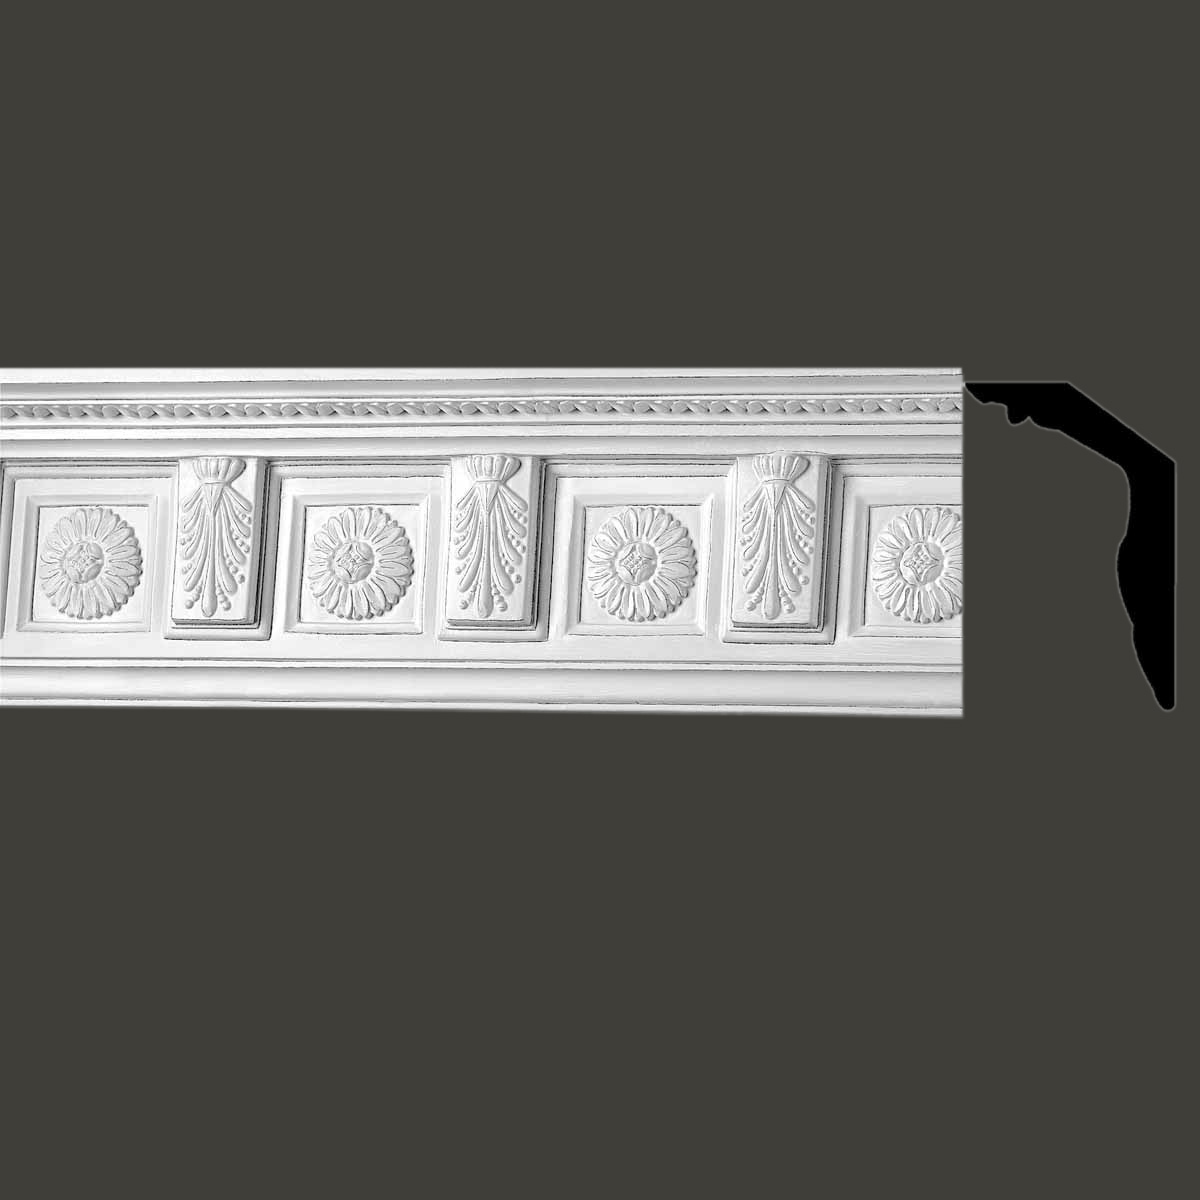 Cornice White Urethane Sample of 10493 18 Long Cornice Cornice Moulding Cornice Molding